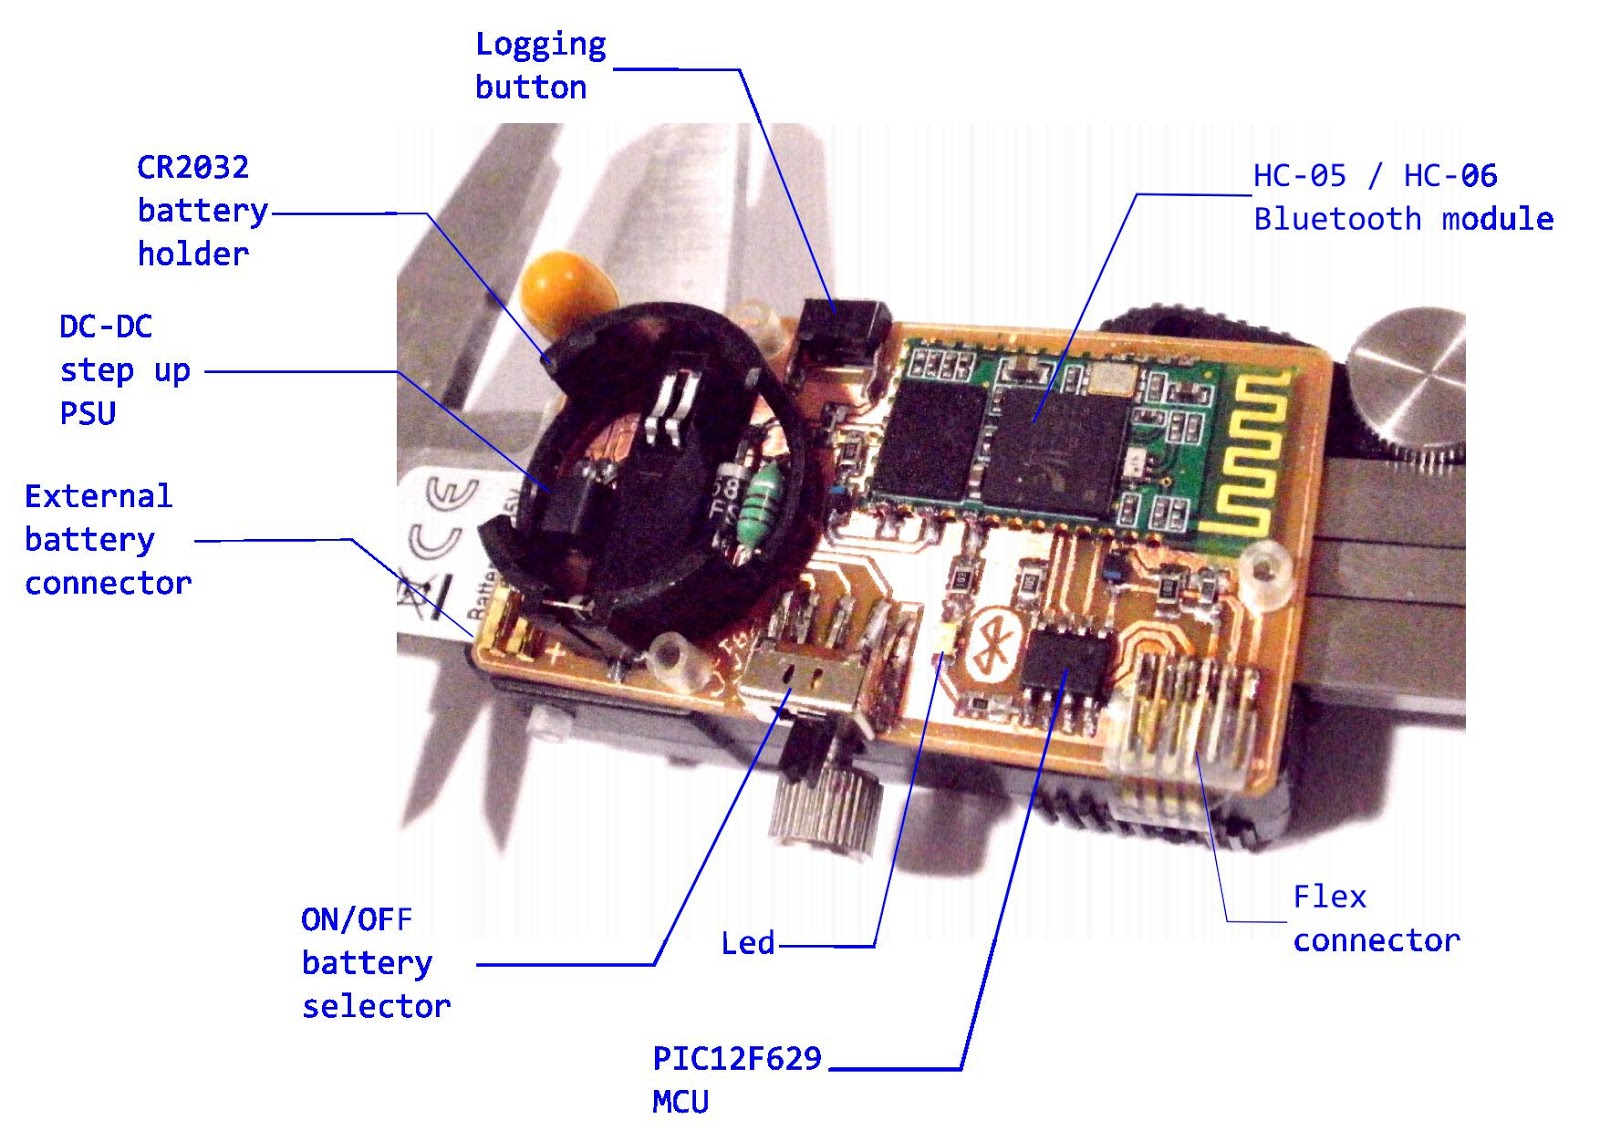 Digital Caliper To Bluetooth Interface Voltblog Circuitdiagramtointerfaceuartwithpic16f877aprimer The Idea Behind This Project Is Build A As Compact Possible Circuit Board Being Capable Of Transmitting Data Stream From Chinese